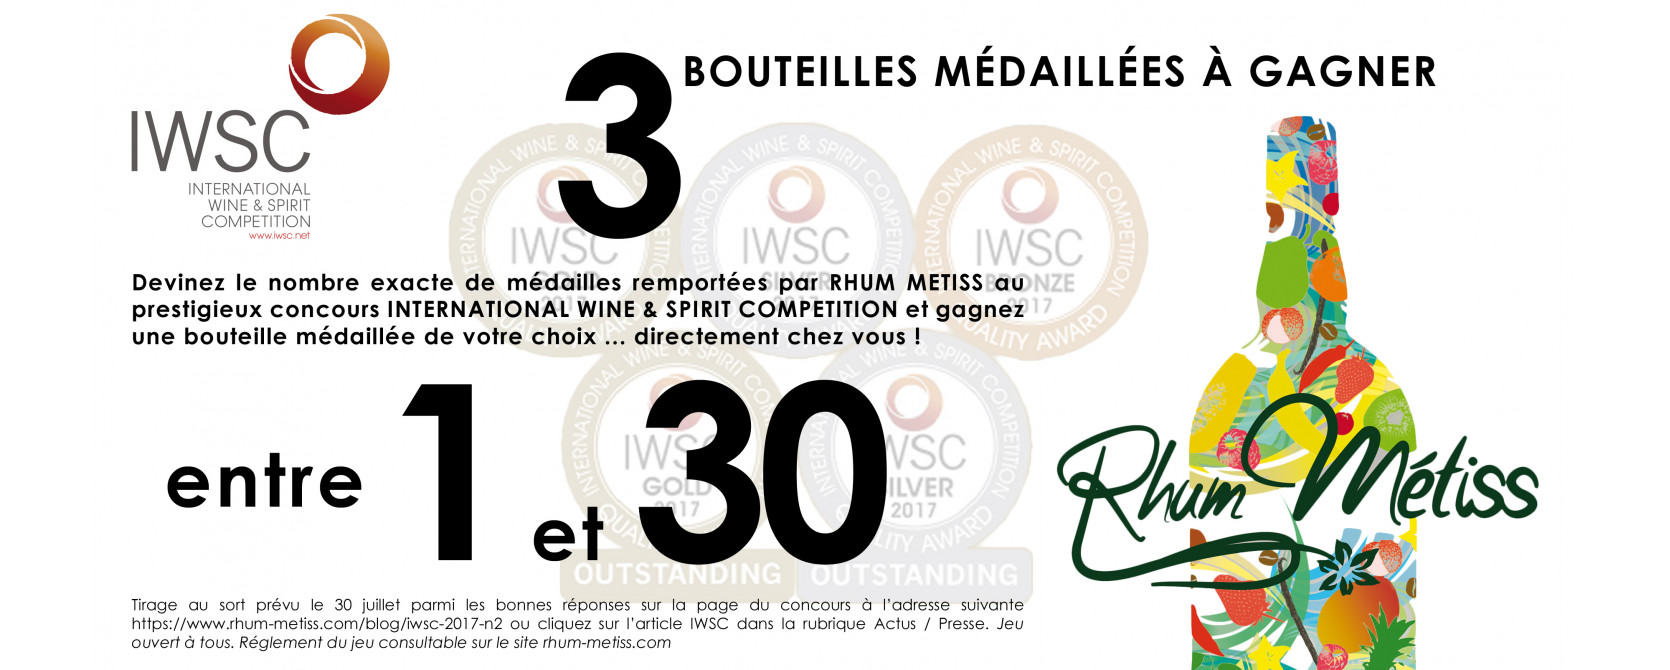 International Wine & Spirit Compétition